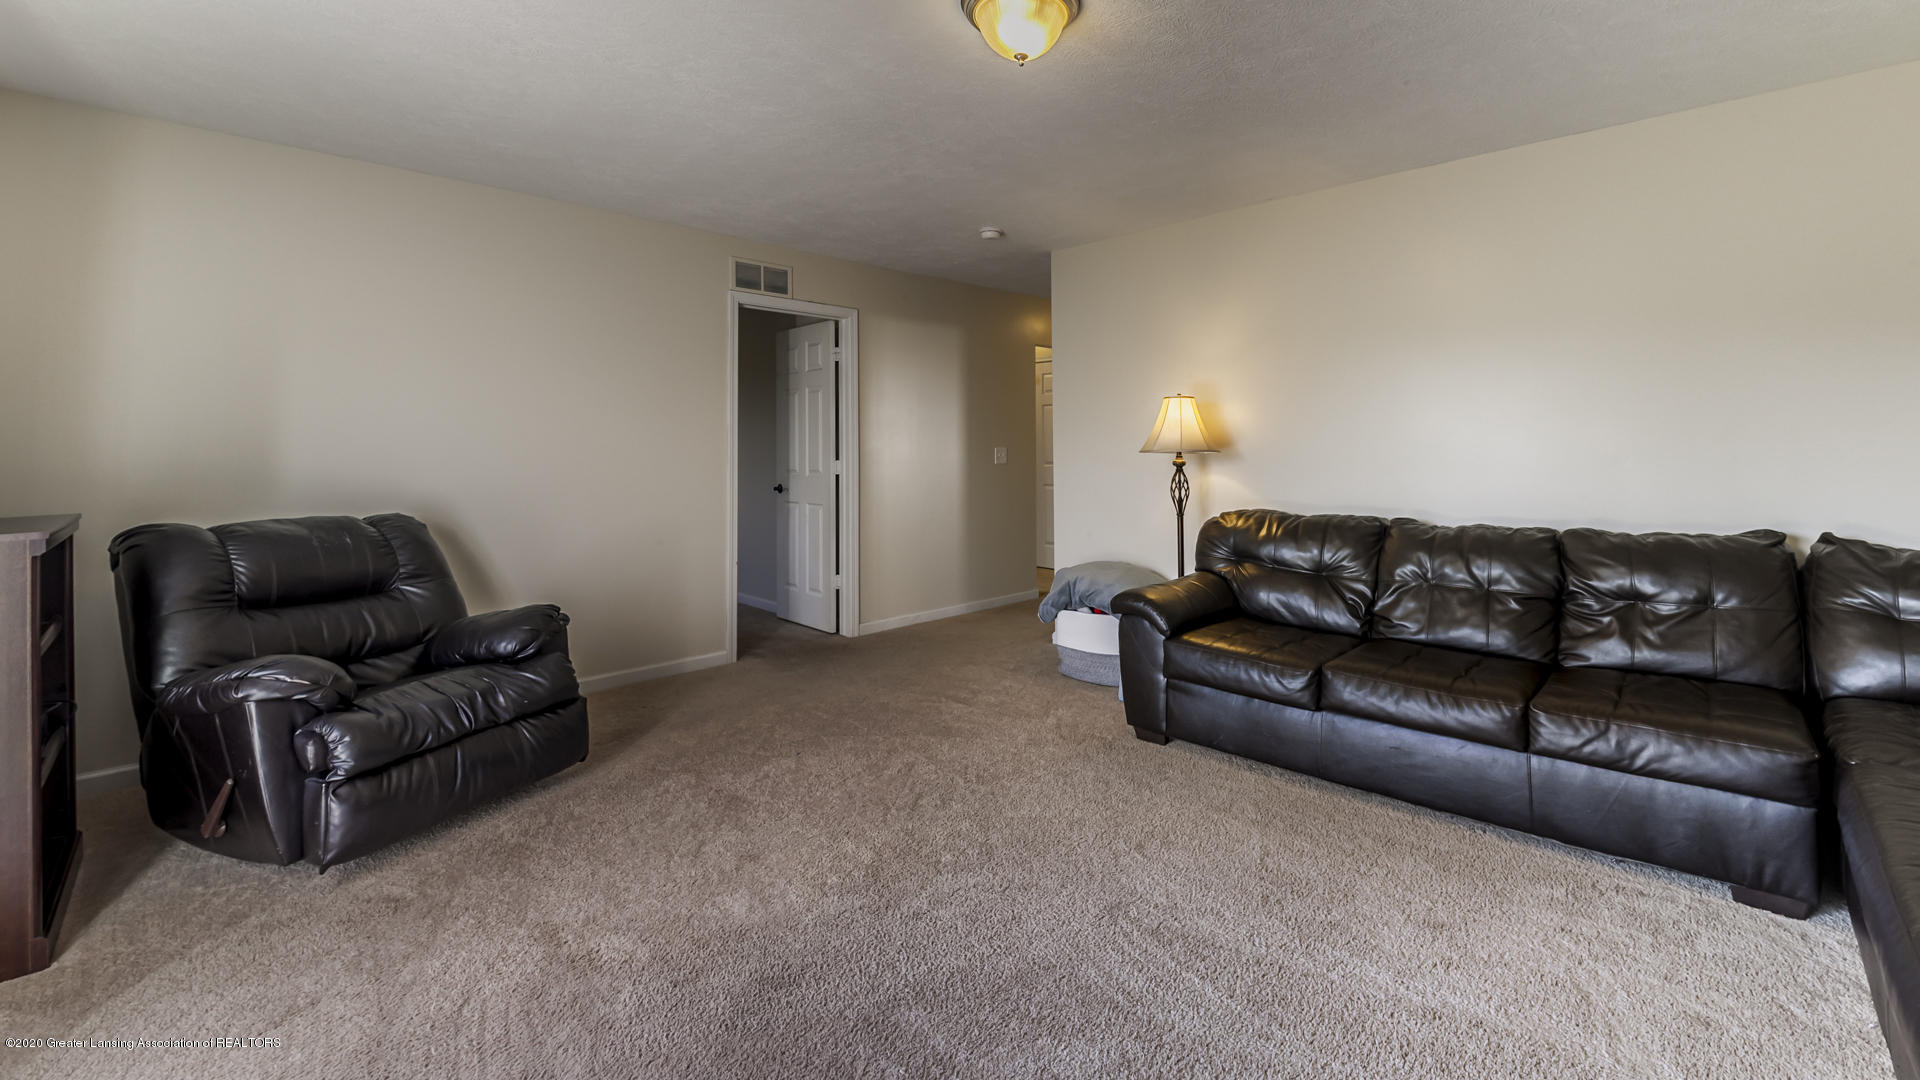 15845 Turnberry St - 15845Turnberry15 - 15